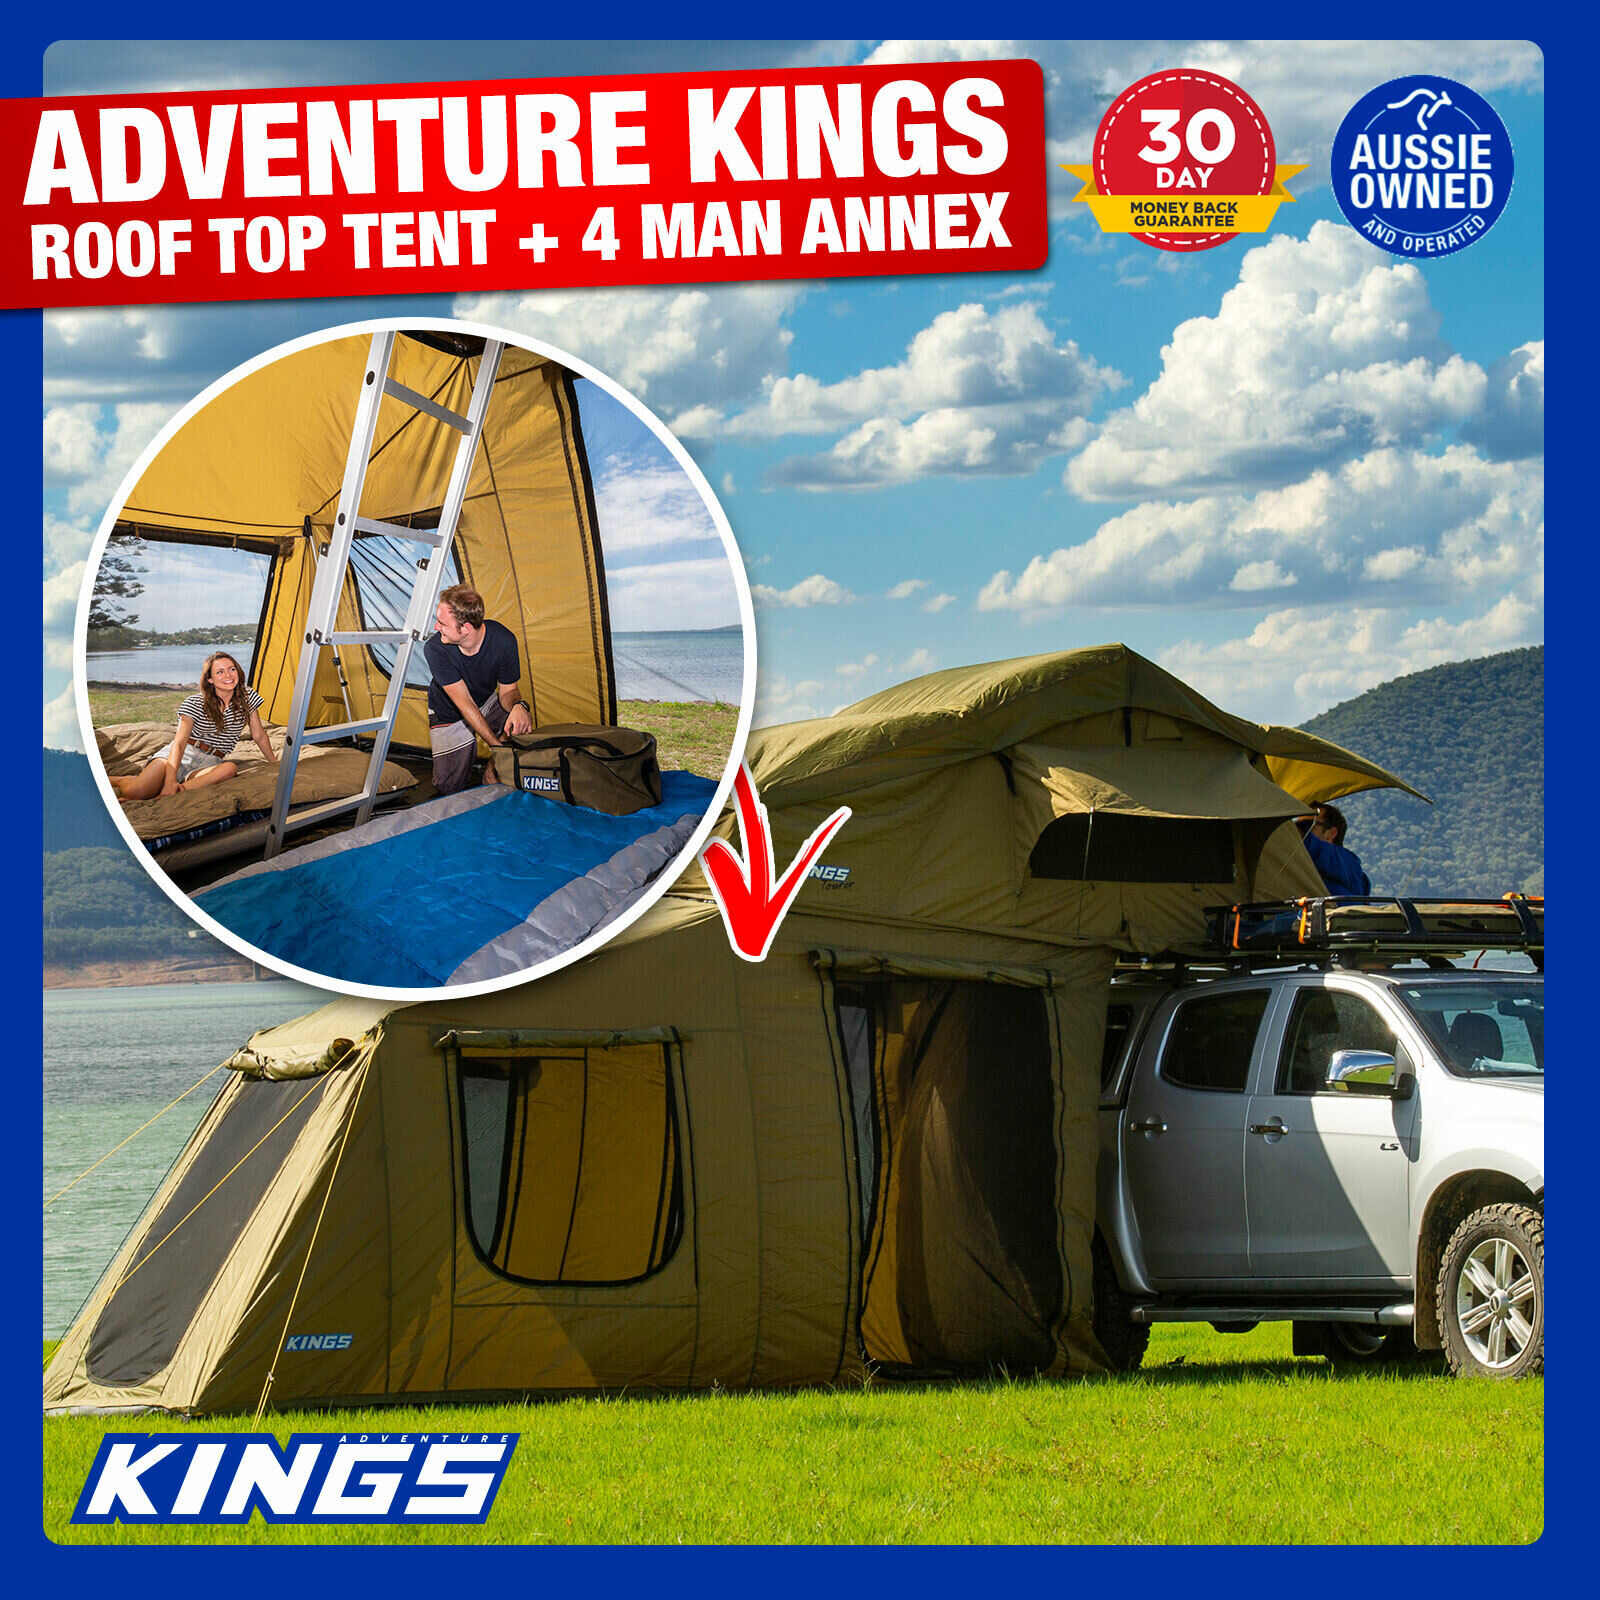 Adventure Kings Roof Top Tent Weight adventure kings roof top tent with 6 man annex waterproof canvas tent home  camp